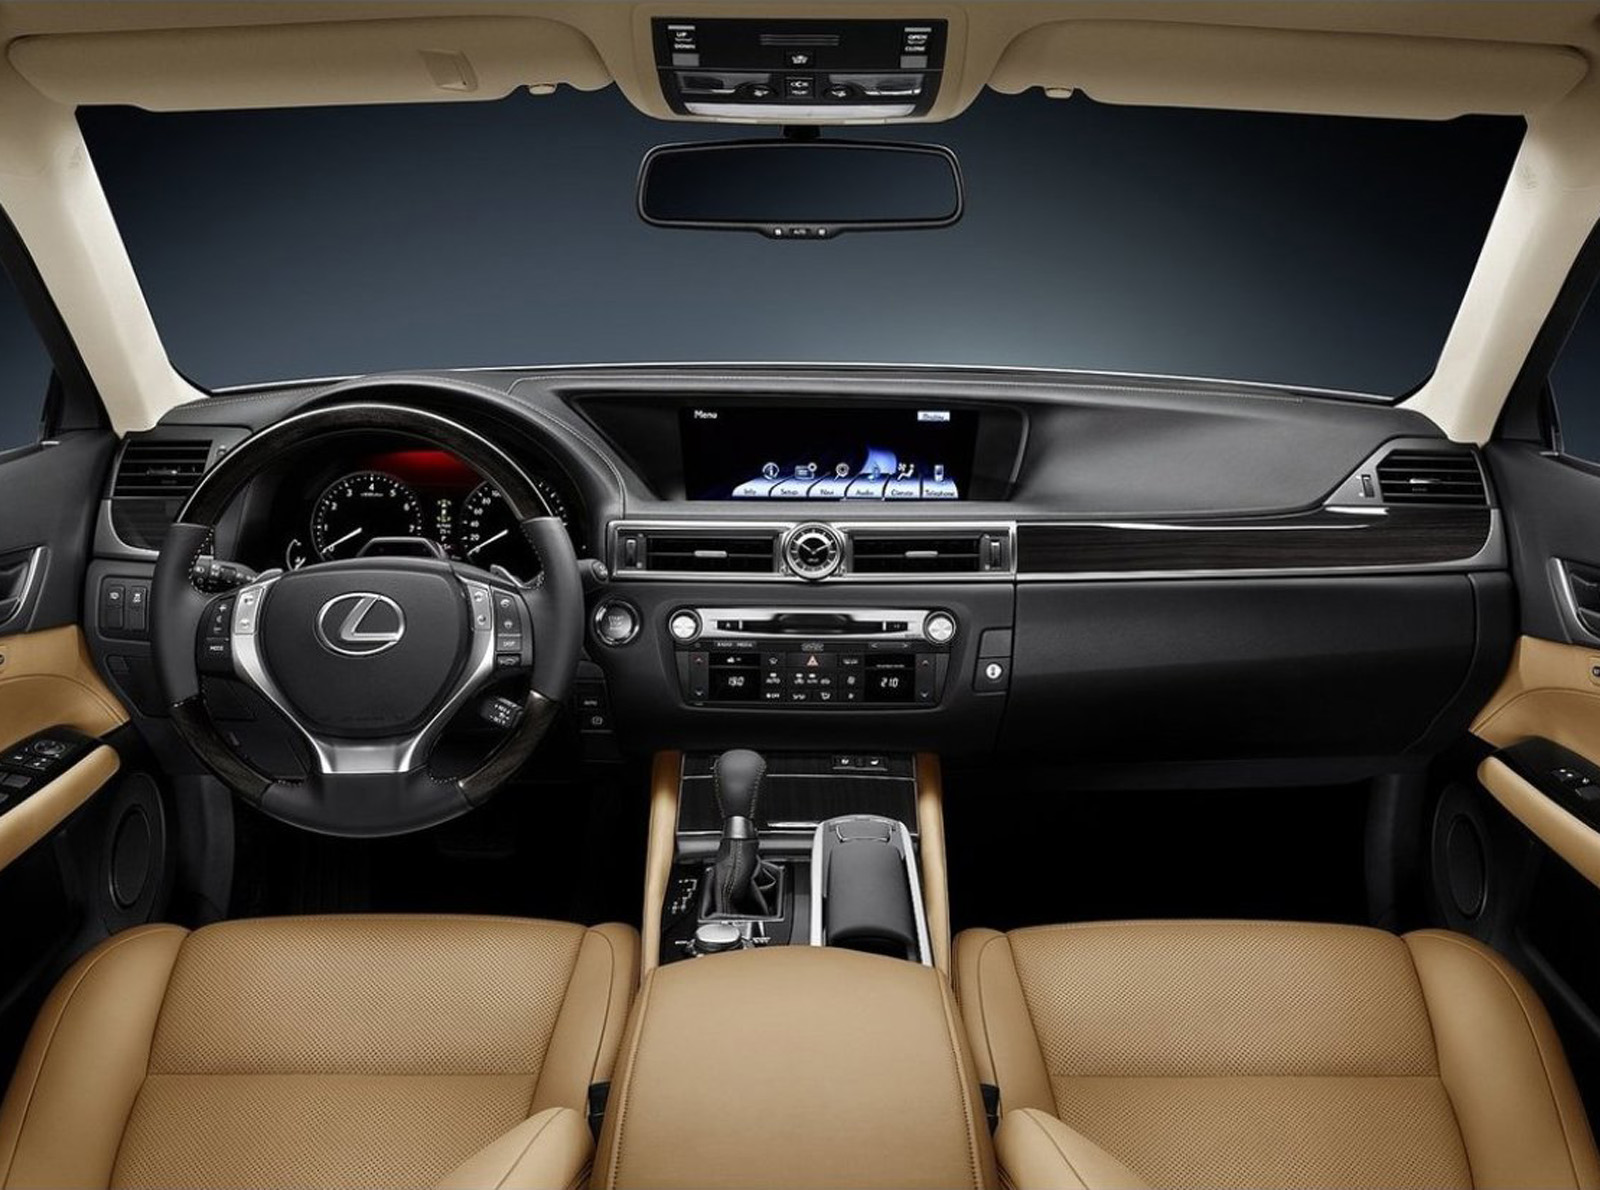 New Car Review  2013 Lexus GS450h Hybrid